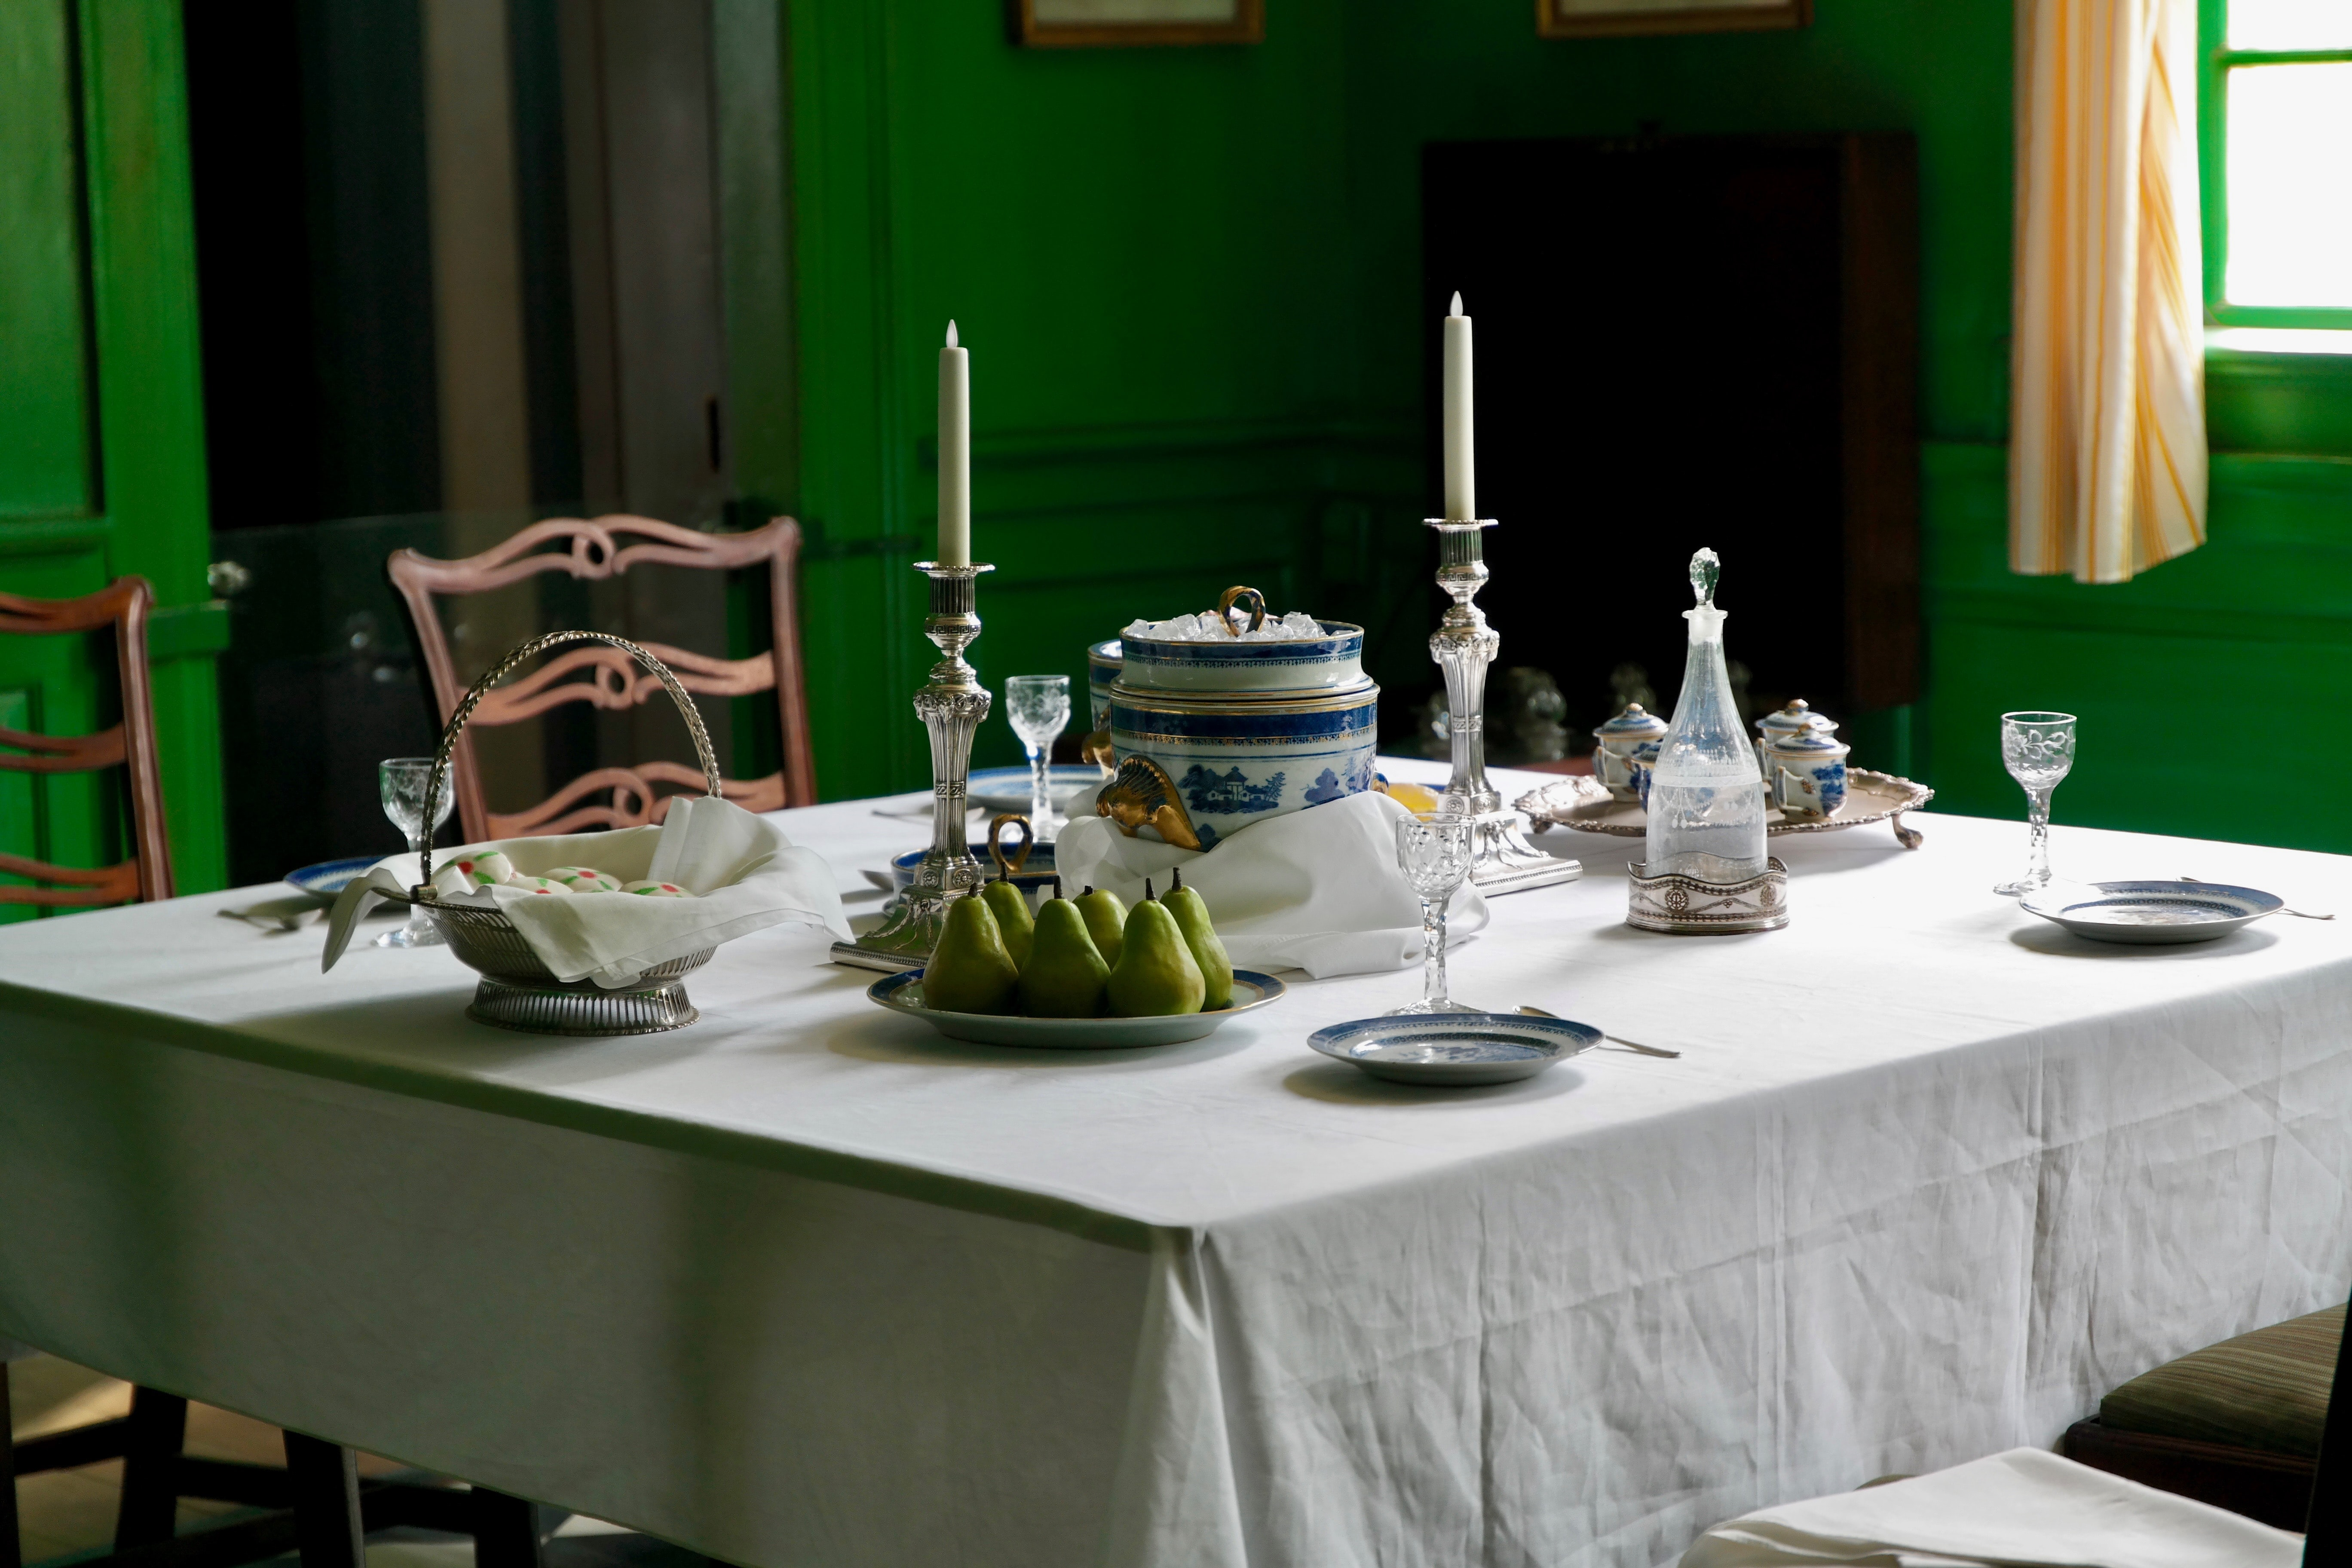 A set table with old-fashioned tableware